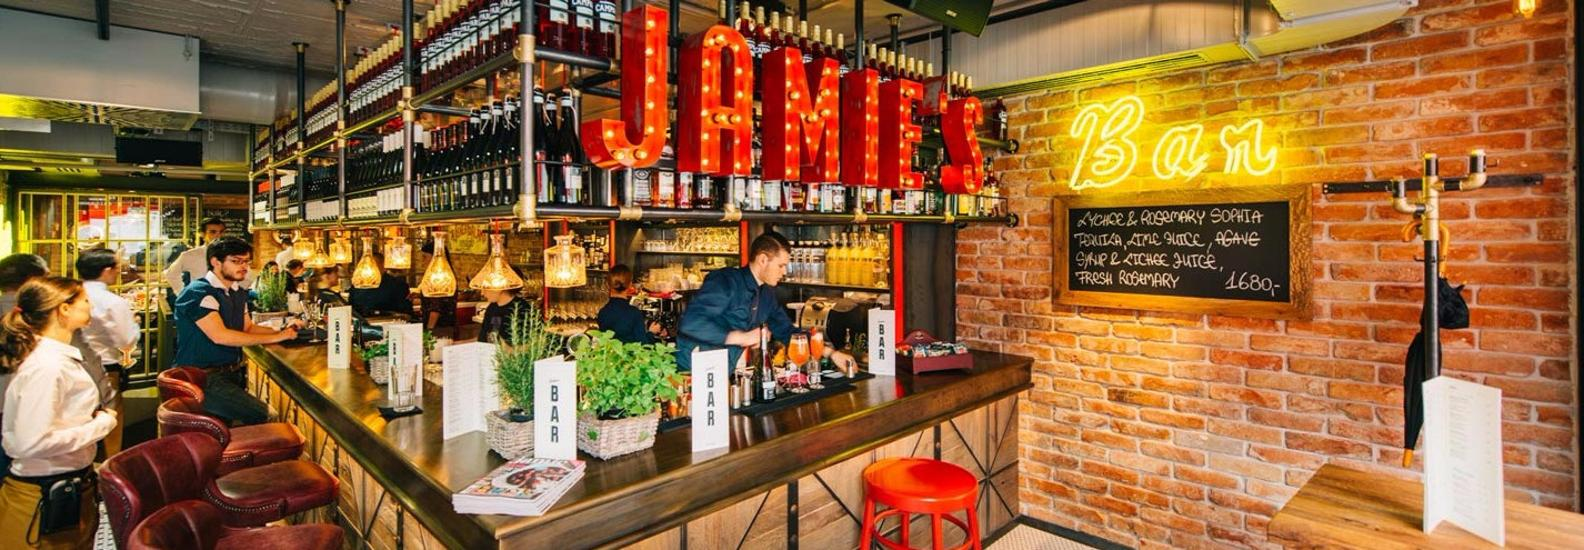 Restaurant Review: Jamie's Italian Kitchen Budapest